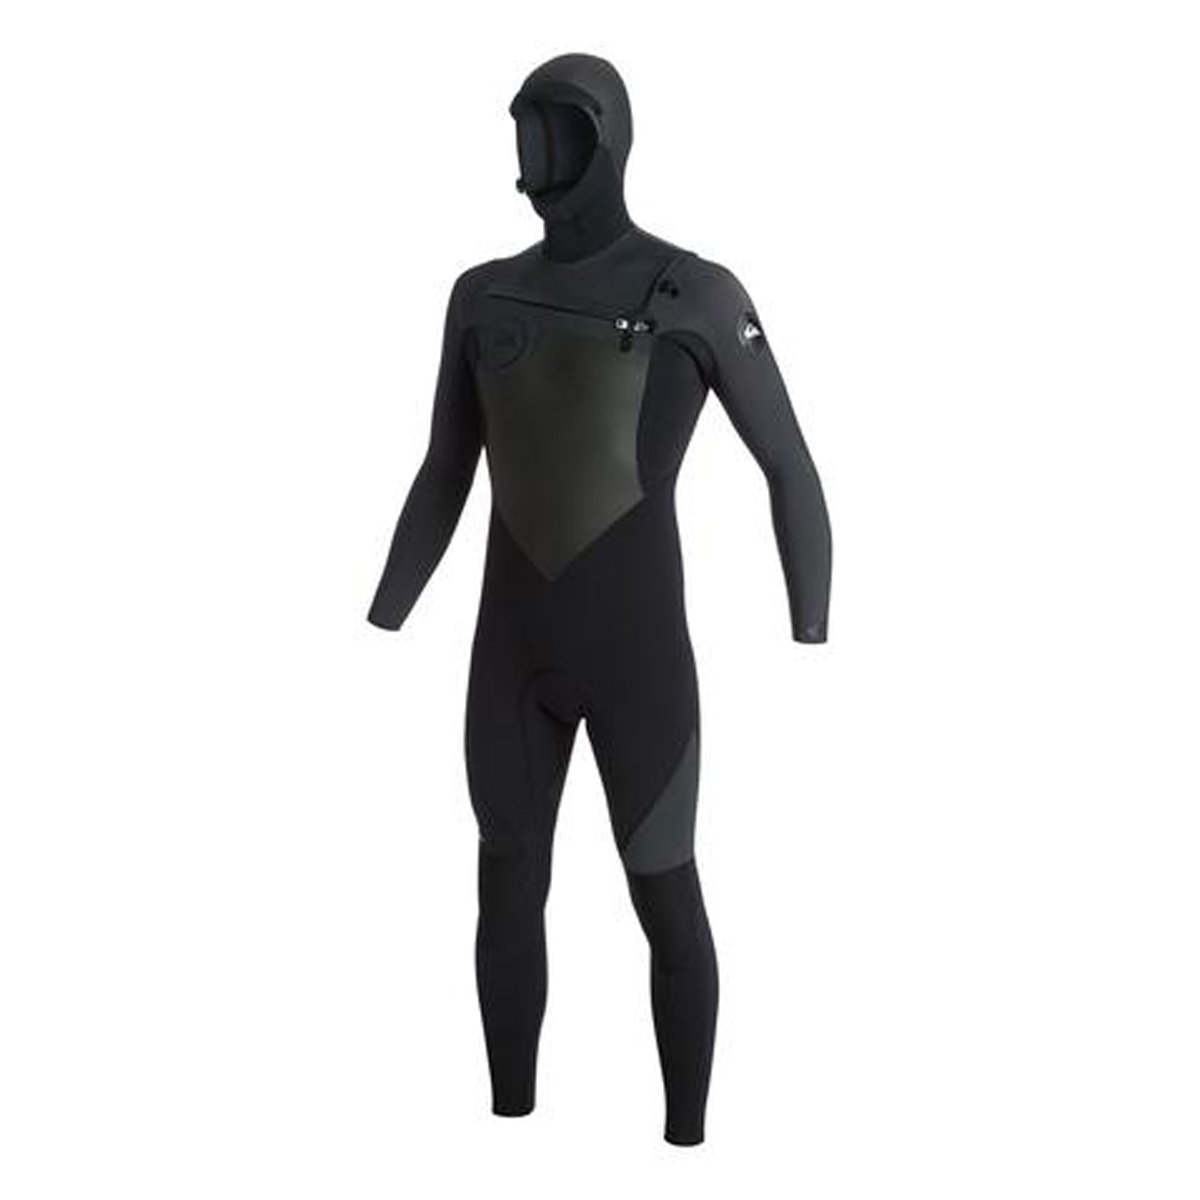 Quiksilver 5/4/3mm Syncro Series Chest Zip GBS Hooded Men's Full Wetsuits - Black/Jet Black/Large Short by Quiksilver